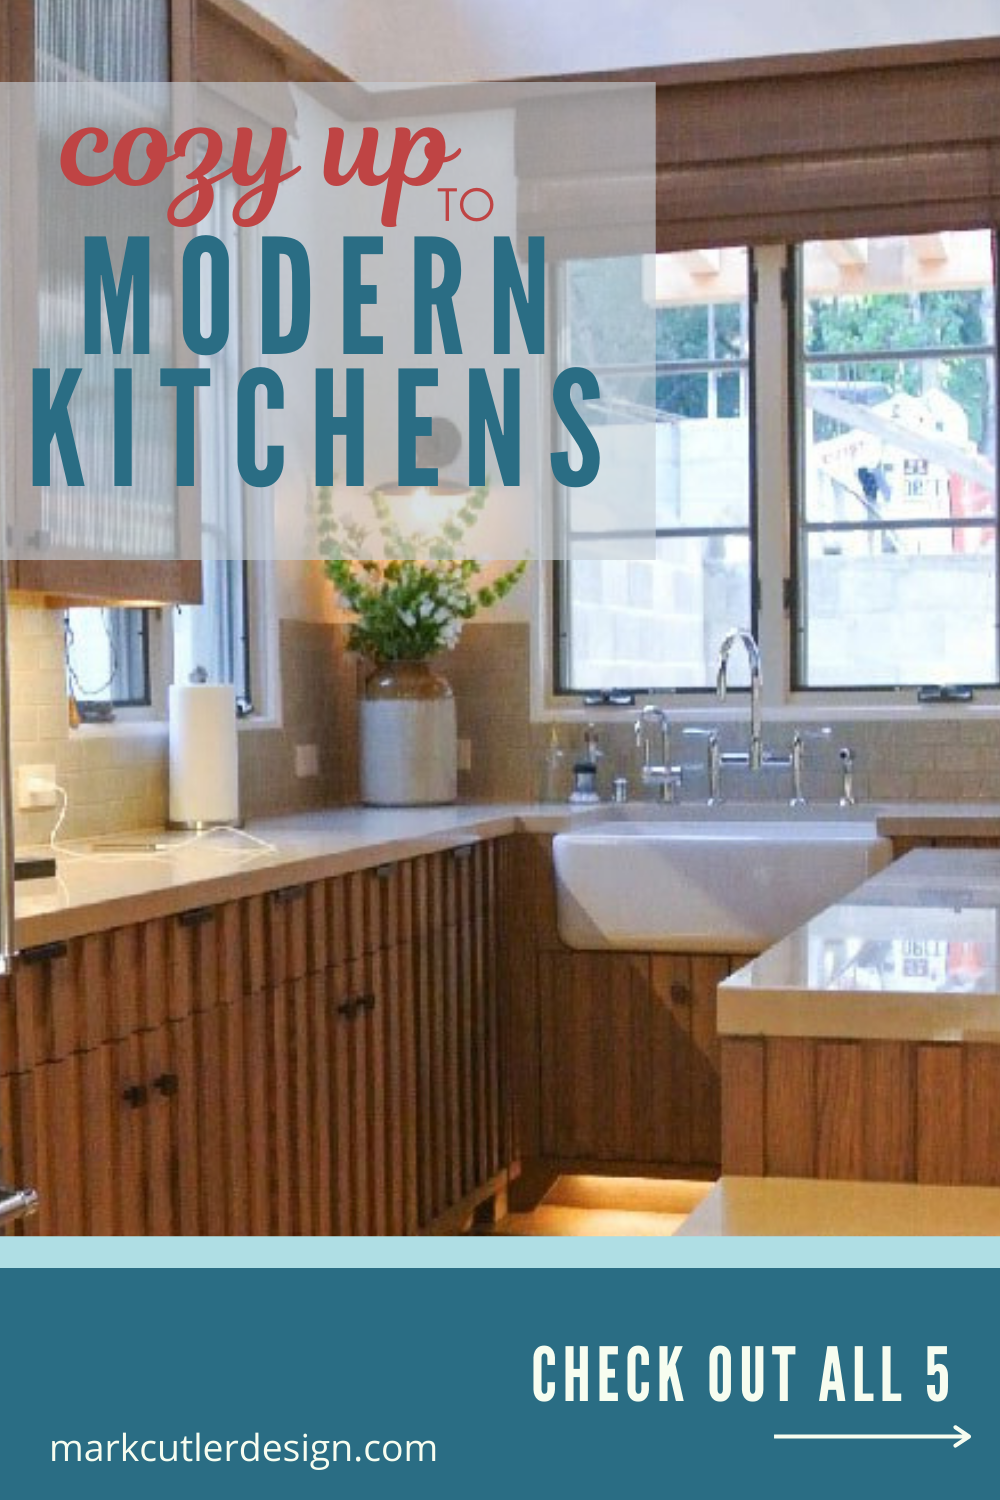 17 Top Kitchen Trends 2020 - What Kitchen Design Styles Are In